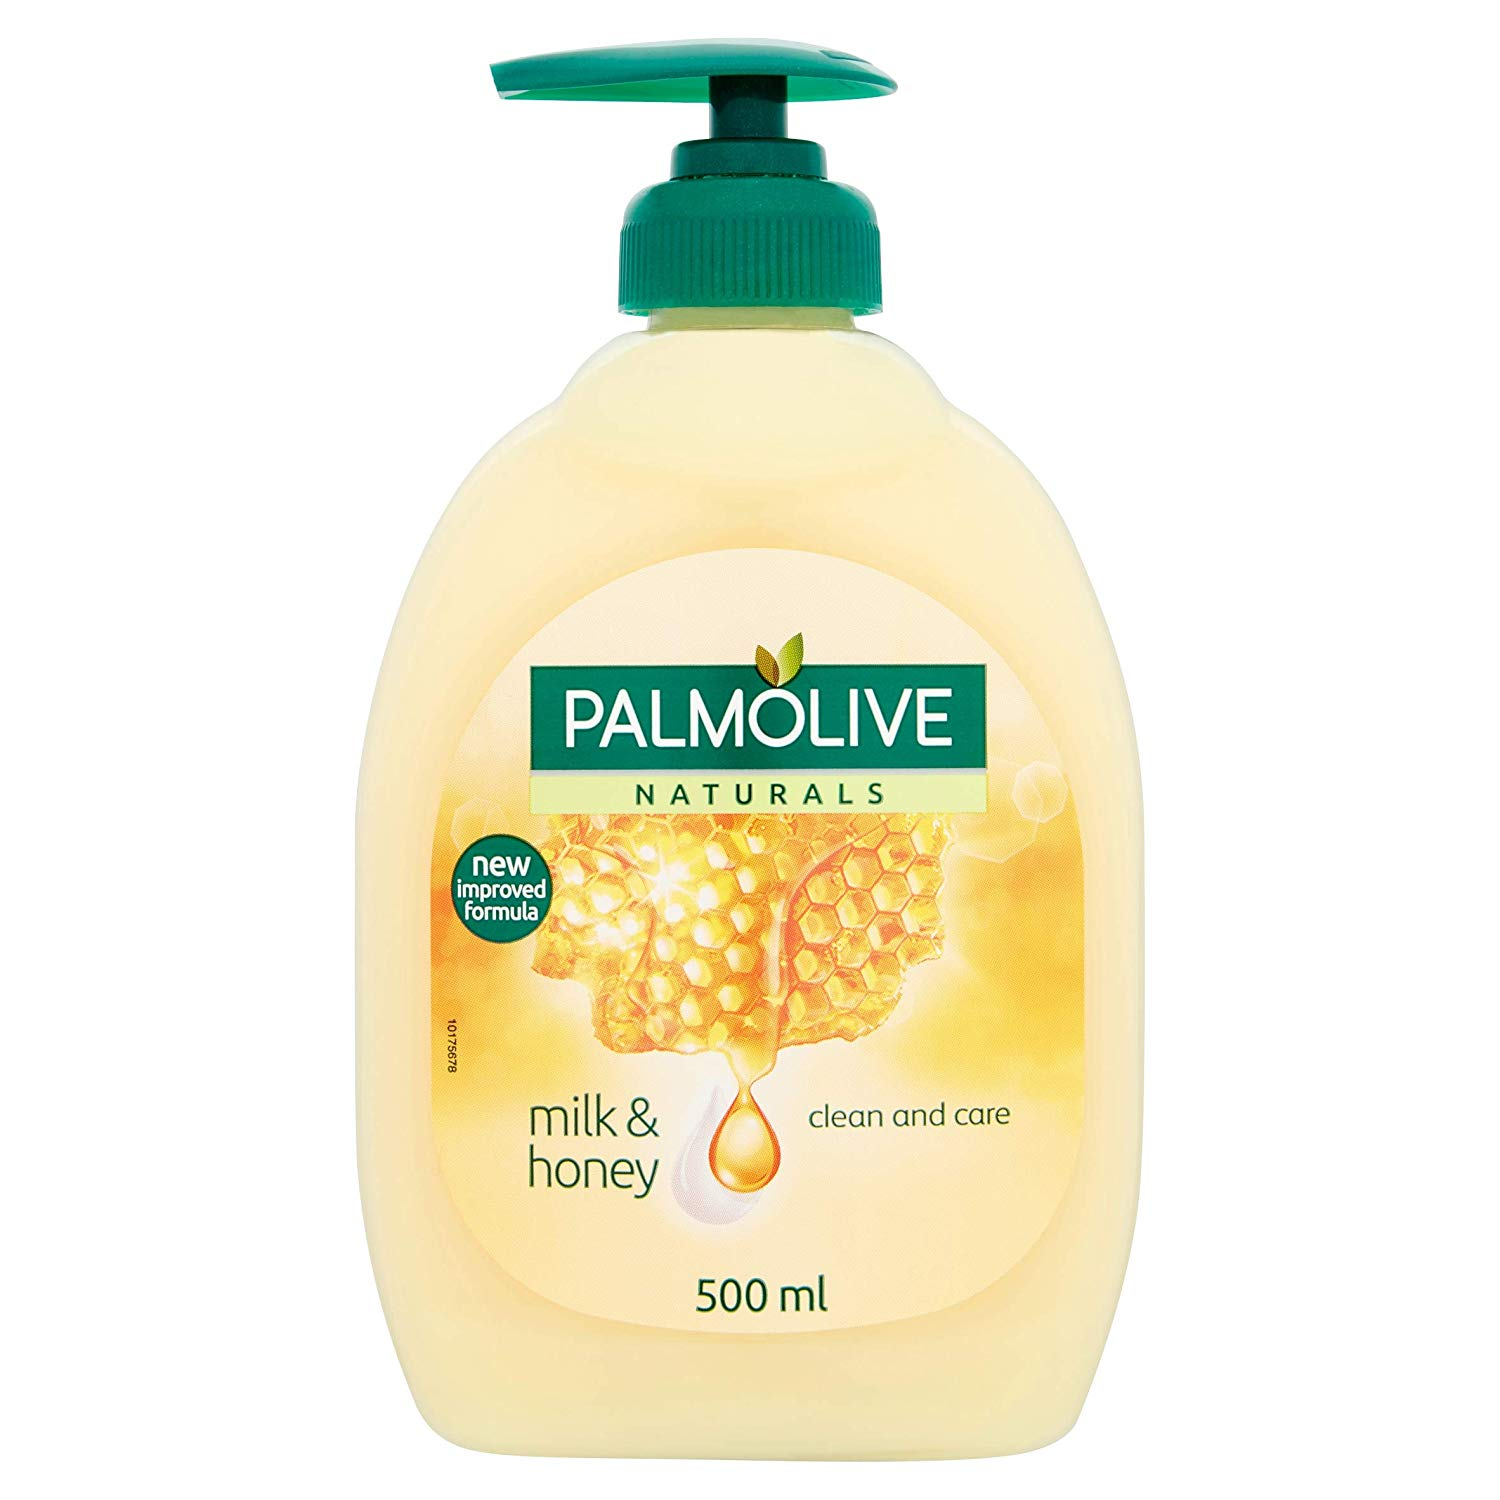 Palmolive Naturals Milk and Honey Liquid Handwash, 500 ml